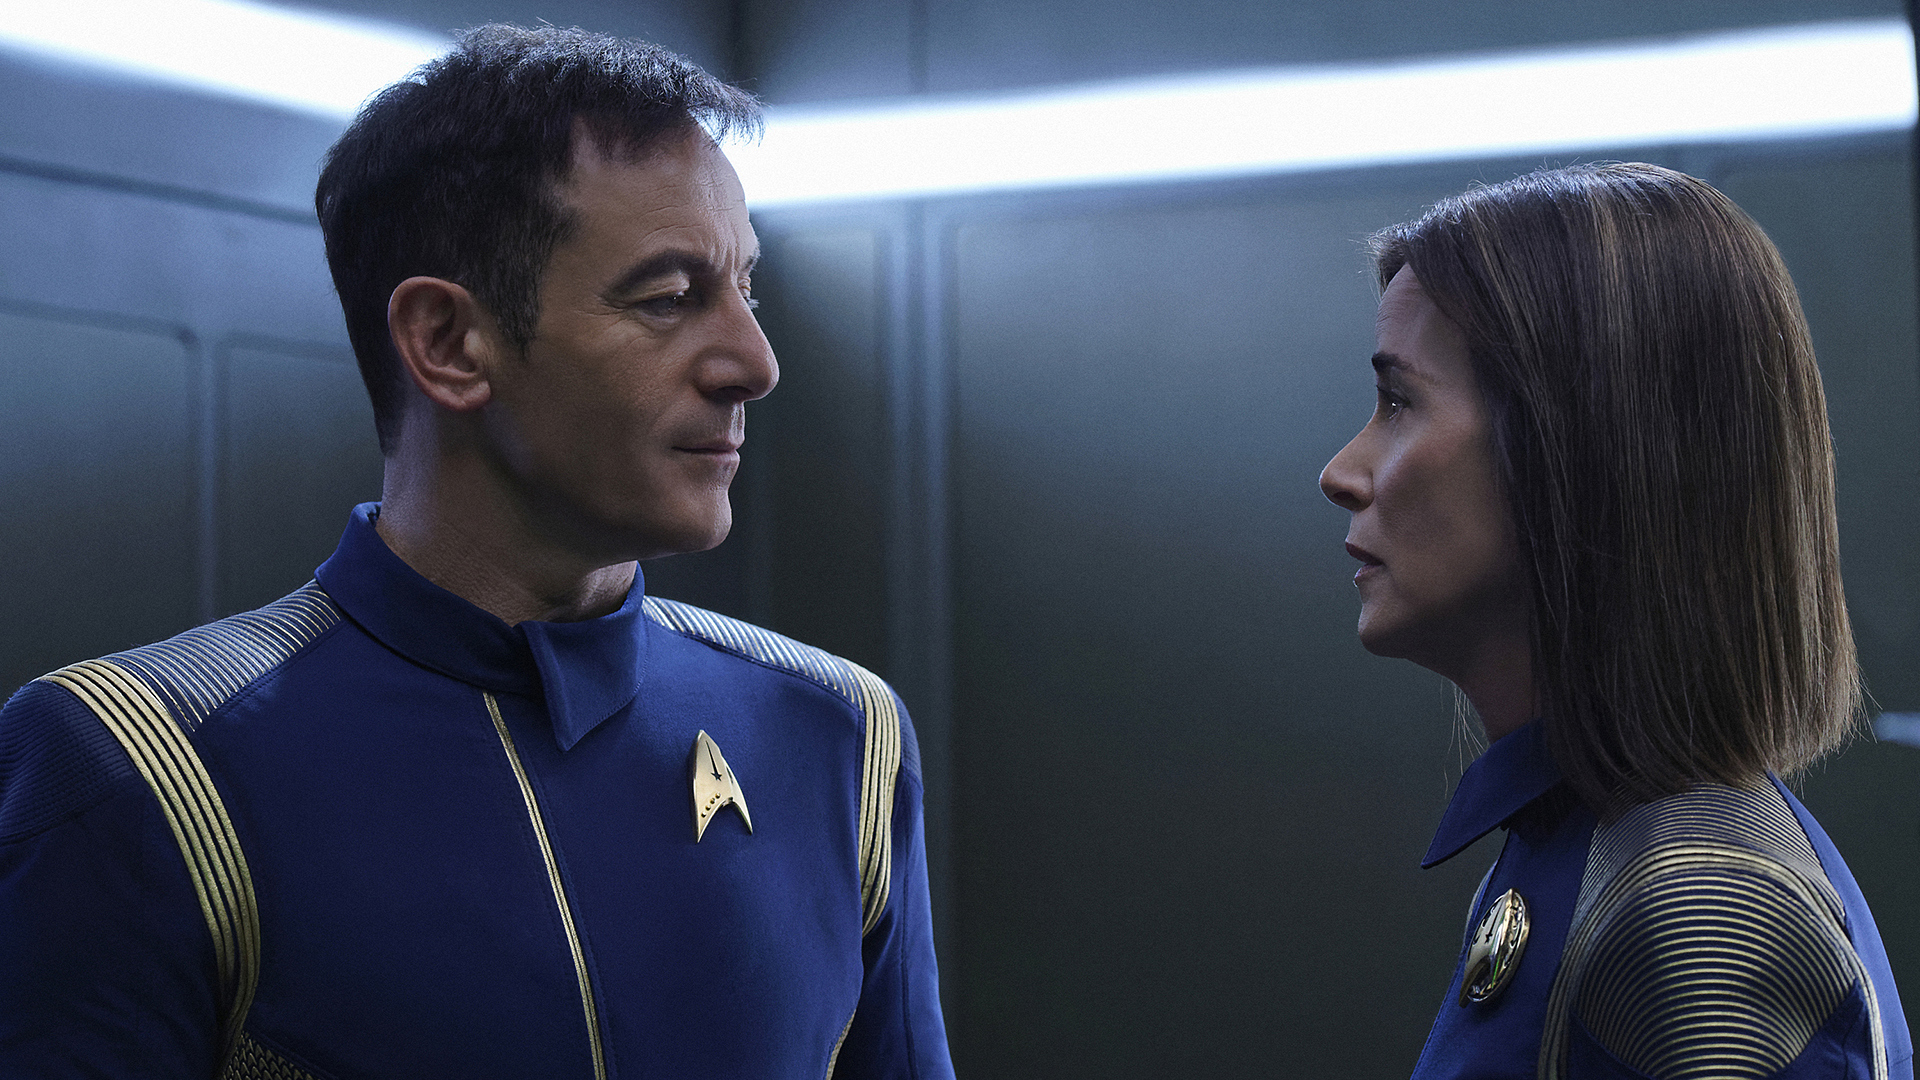 Captain Gabriel Lorca (Jason Isaacs) and Admiral Cornwell (Jayne Brook)